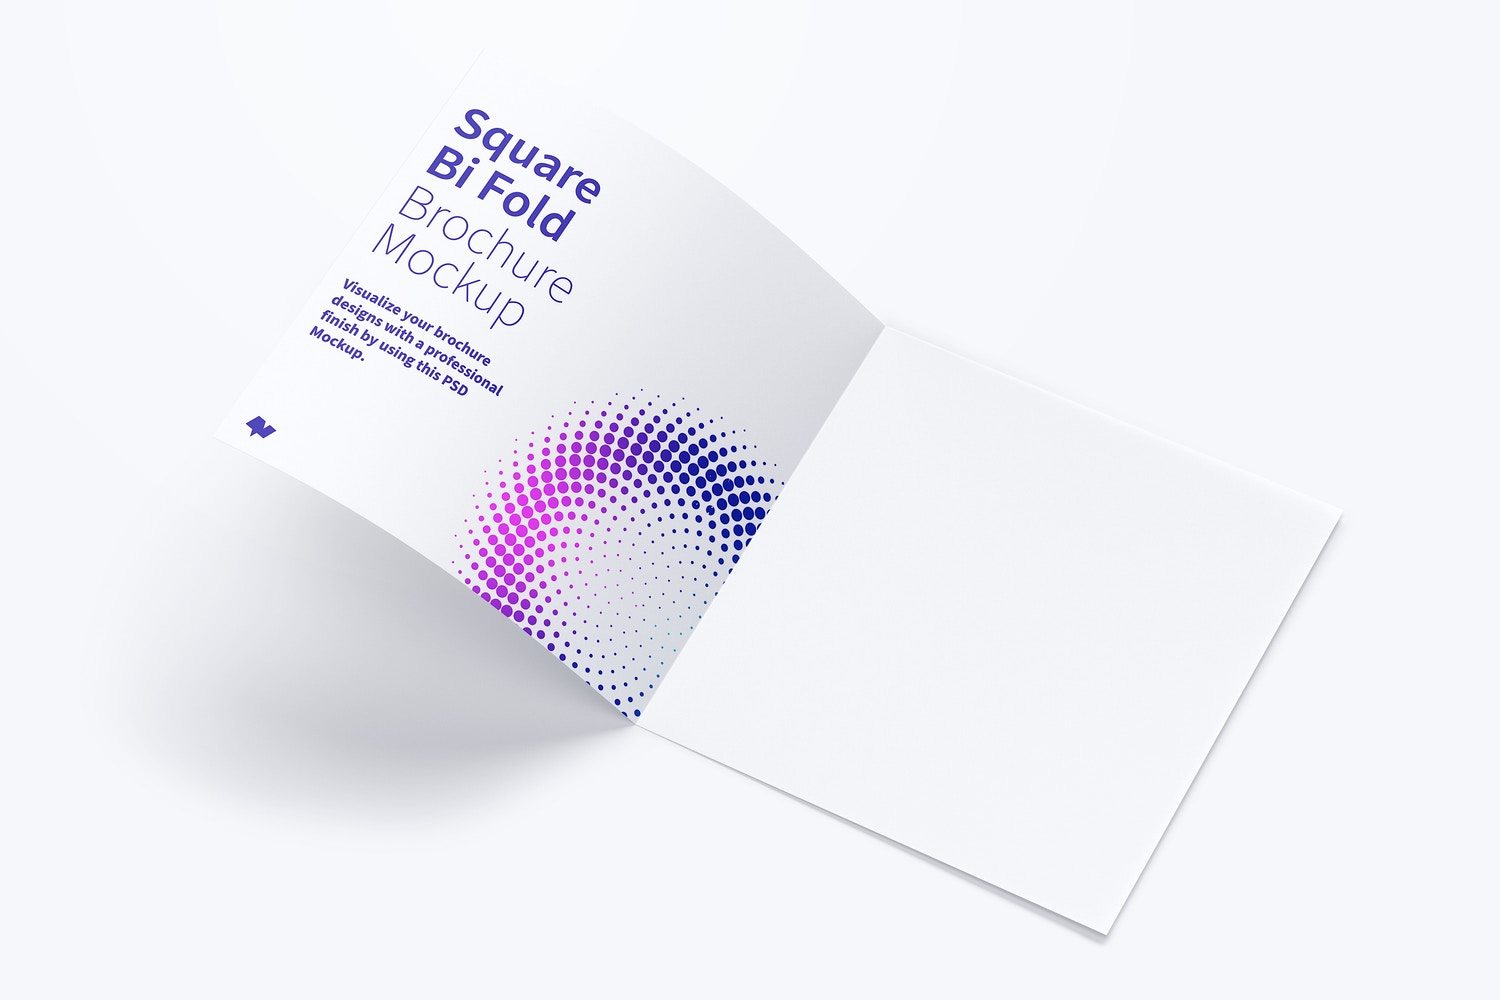 Square Bi Fold Brochure Mockup 02 by Original Mockups on Original Mockups